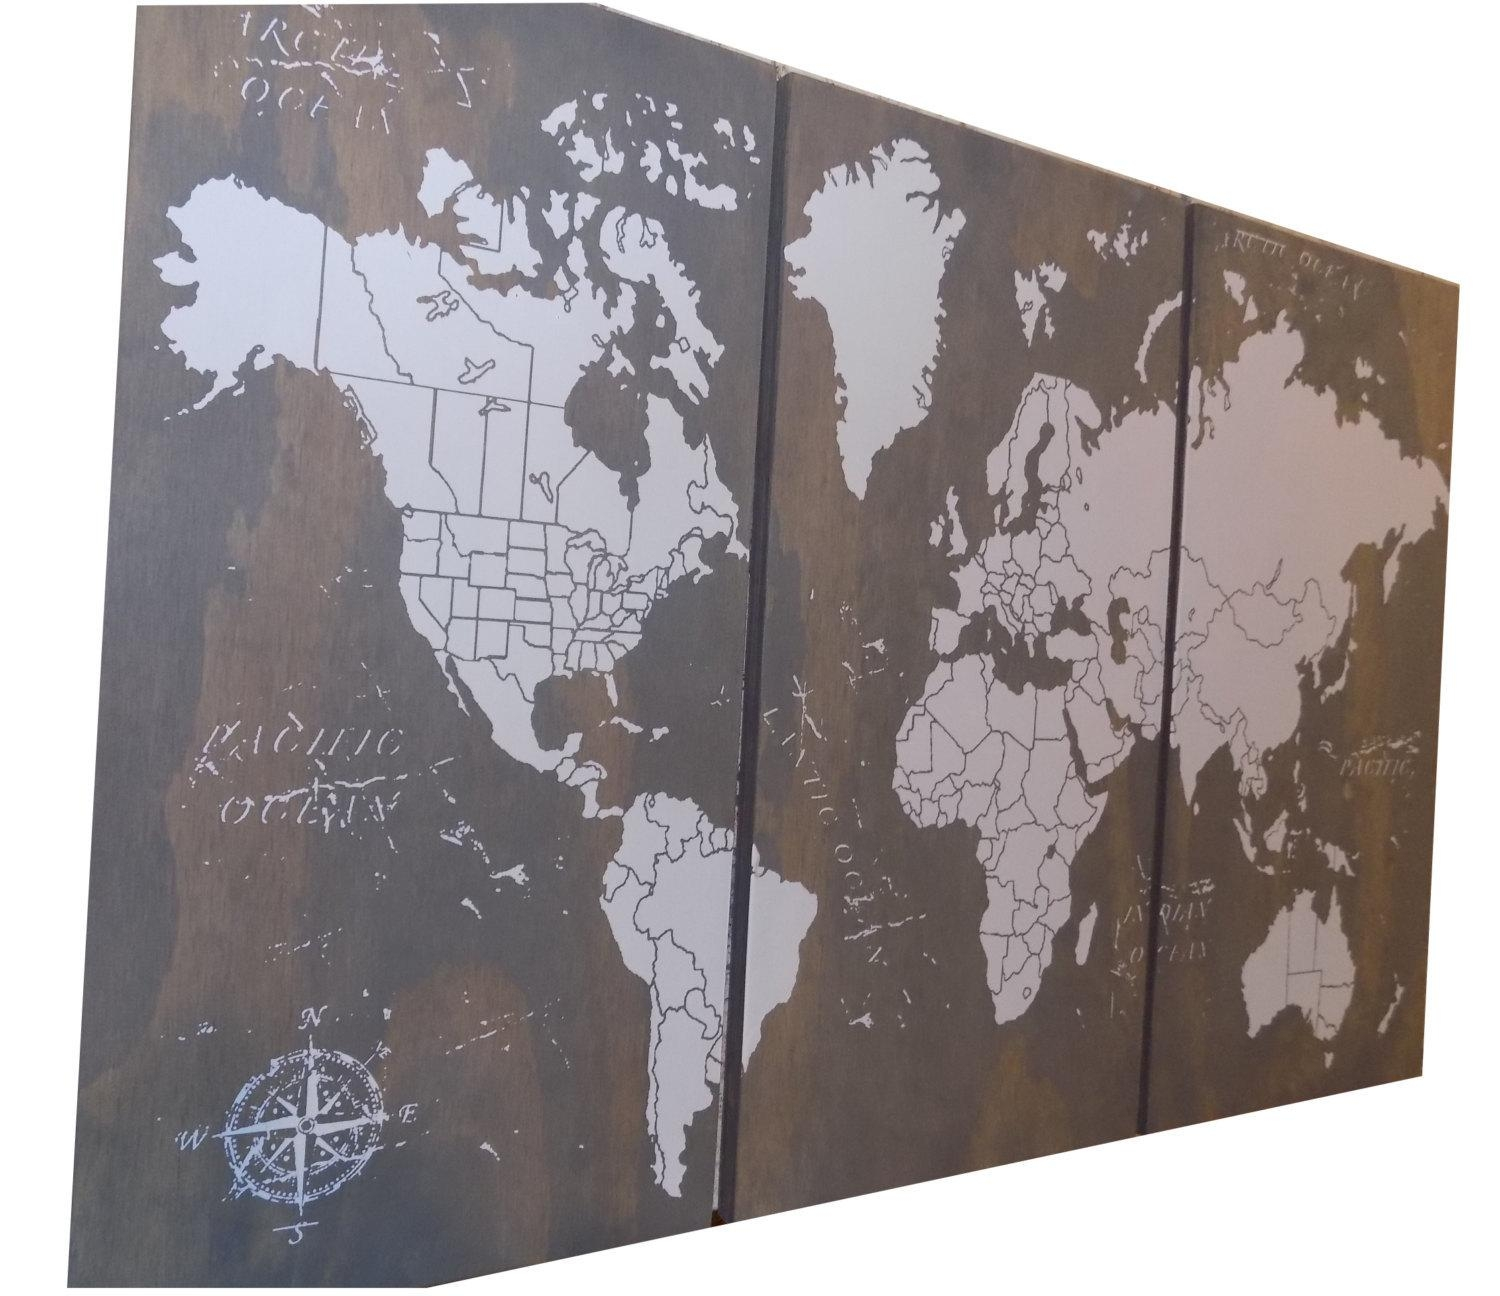 Extra Large World Push Pin Travel Map With Us Borders 3' Throughout Us Map Wall Art (Image 6 of 20)